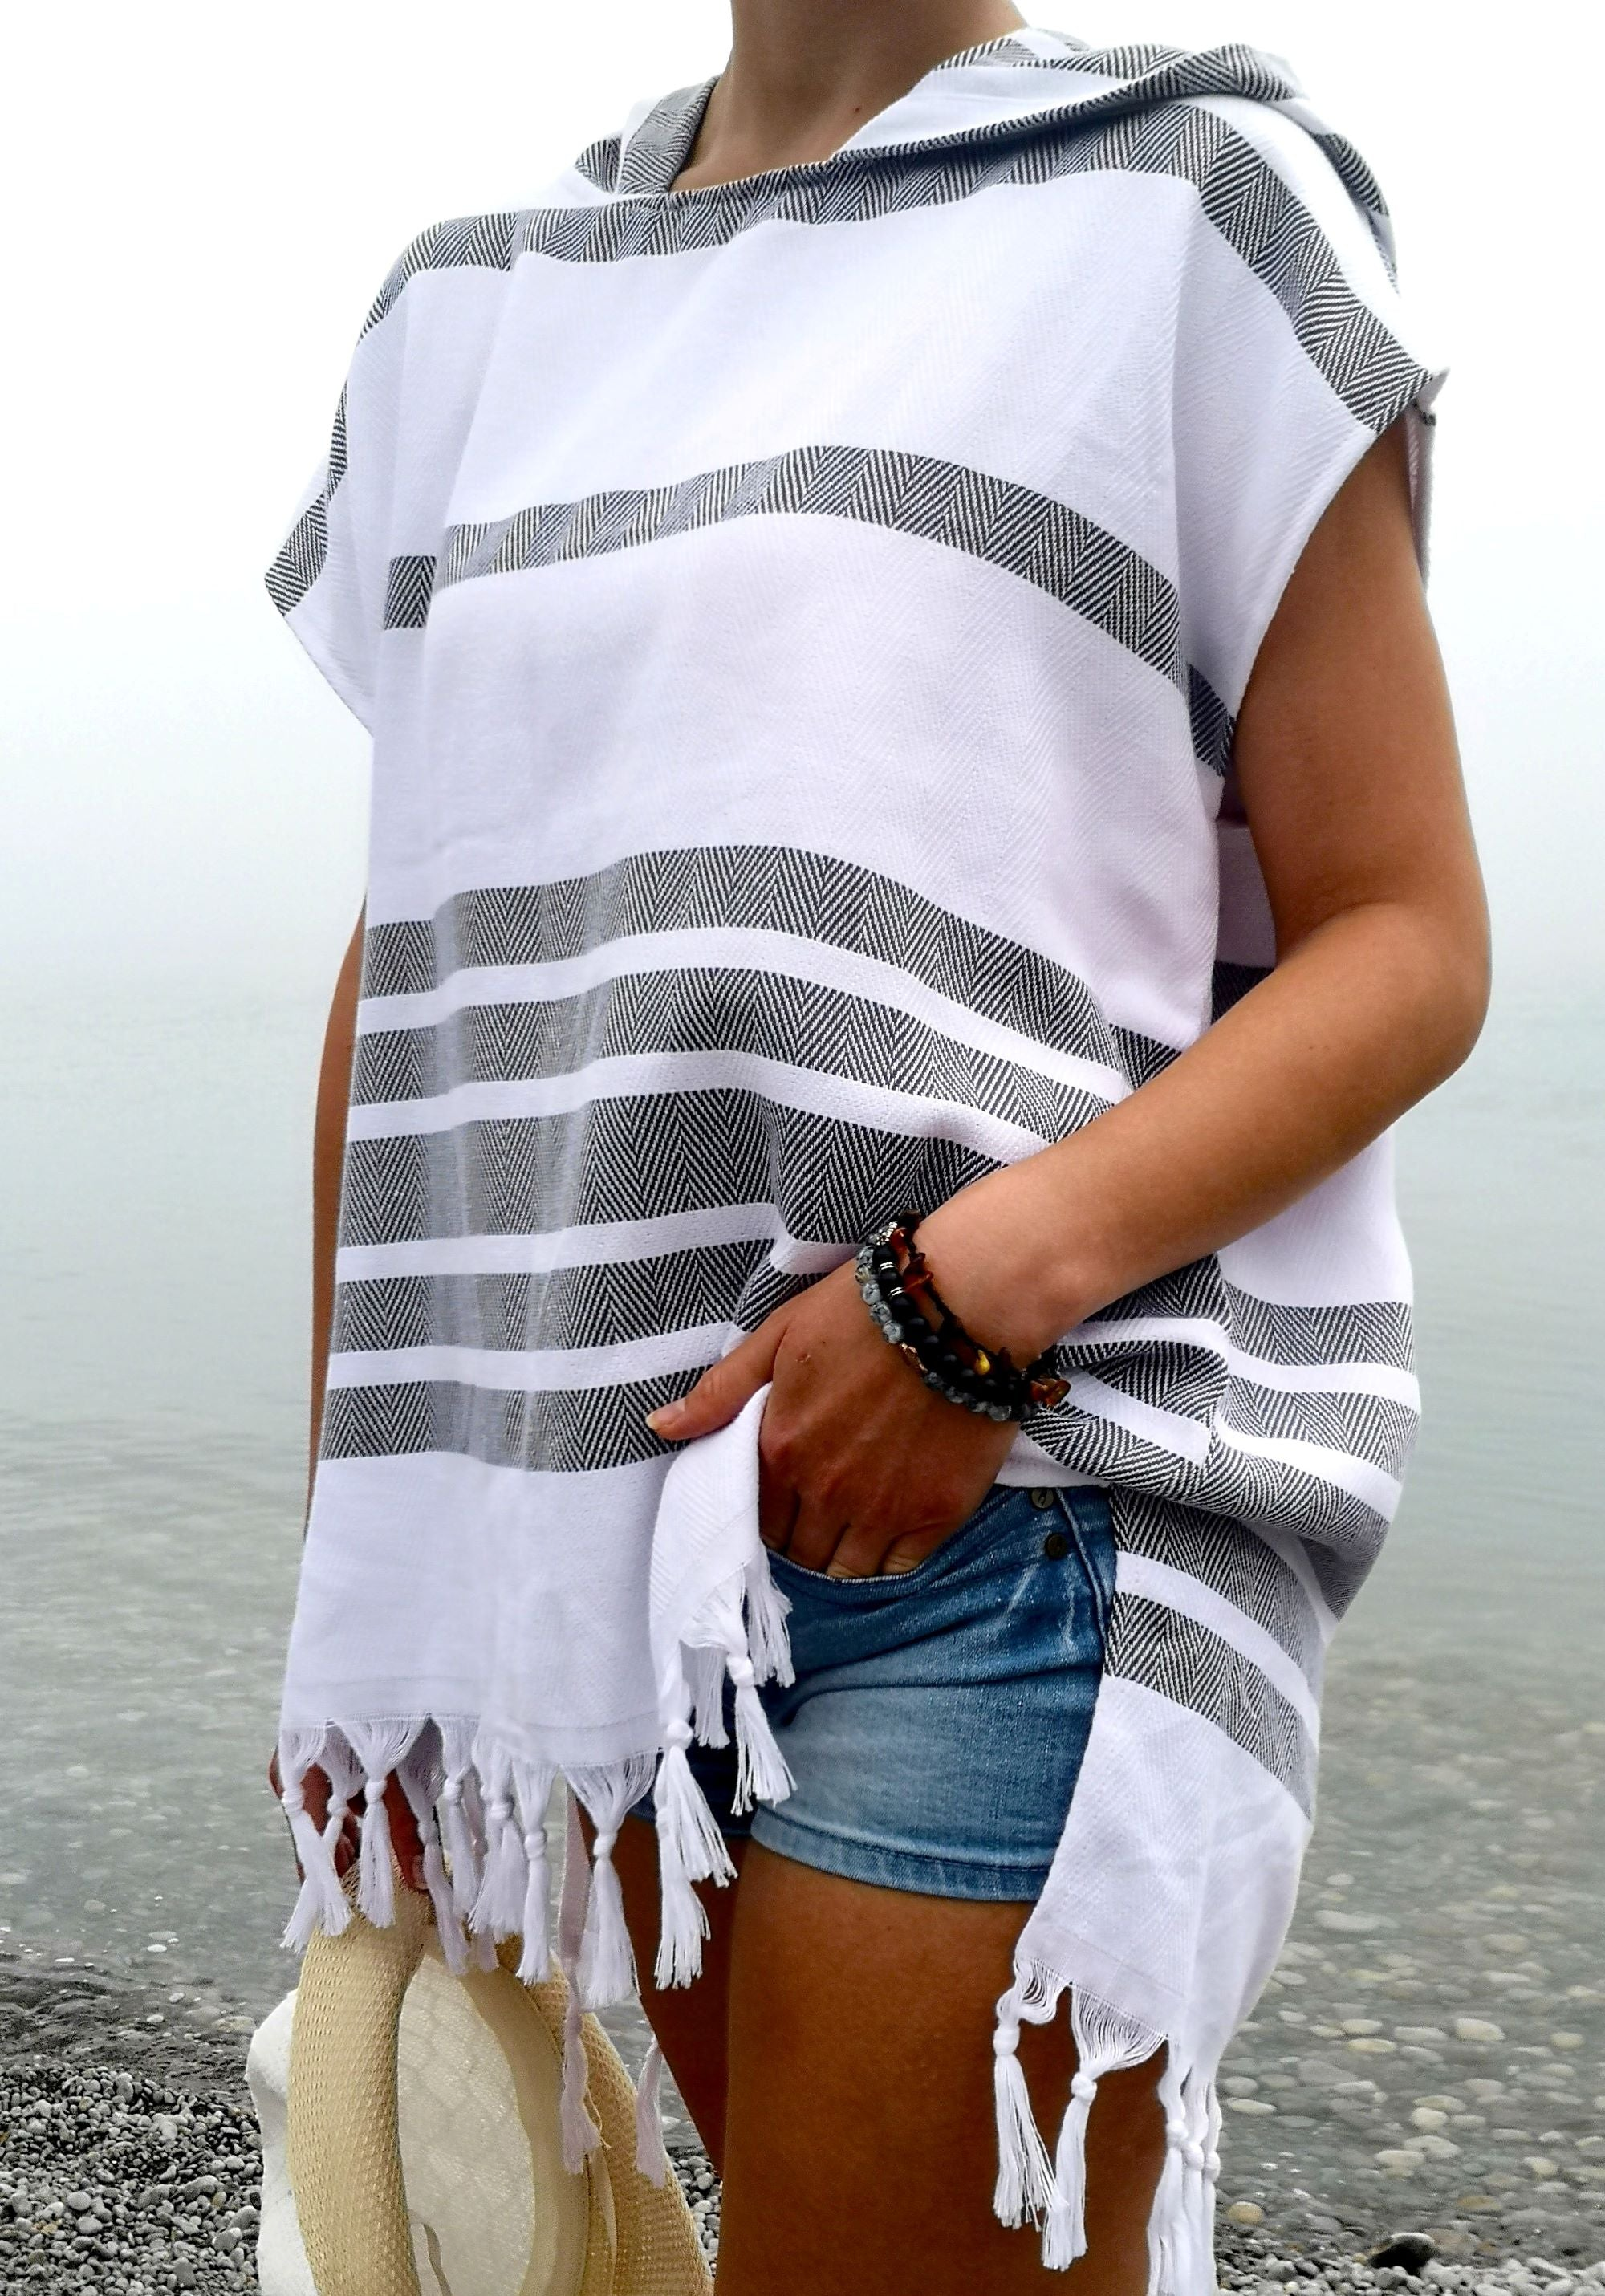 hooded Poncho for women Turkish towel , black/white color, Crafted with finely loomed Turkish Peshtemal cotton, Multipurpose, Lightweight and textured